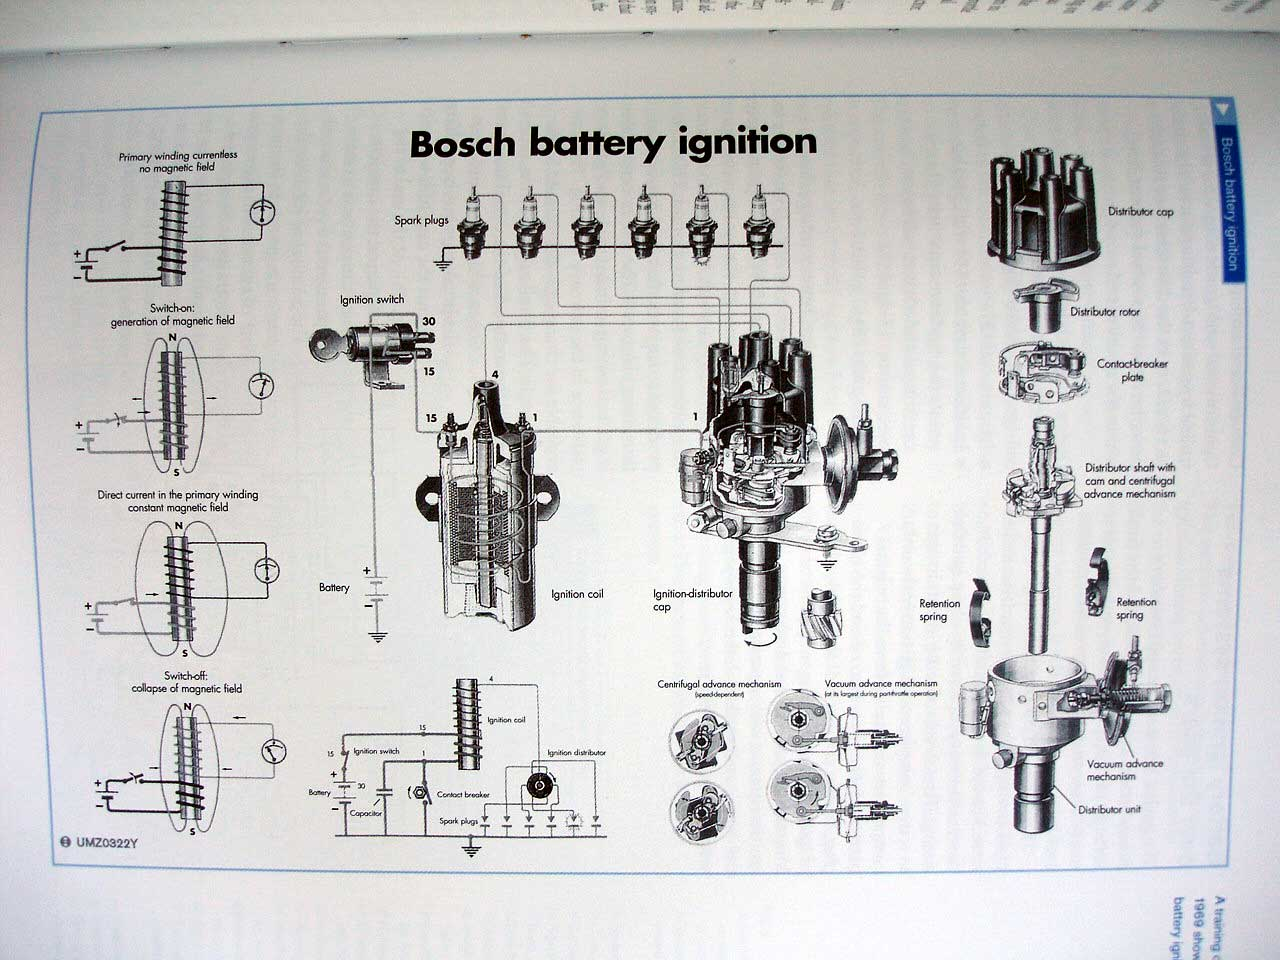 Bosch Ignition Coil Internal Wiring Diagram Electrical Diagrams Wiper Understanding The System Switch